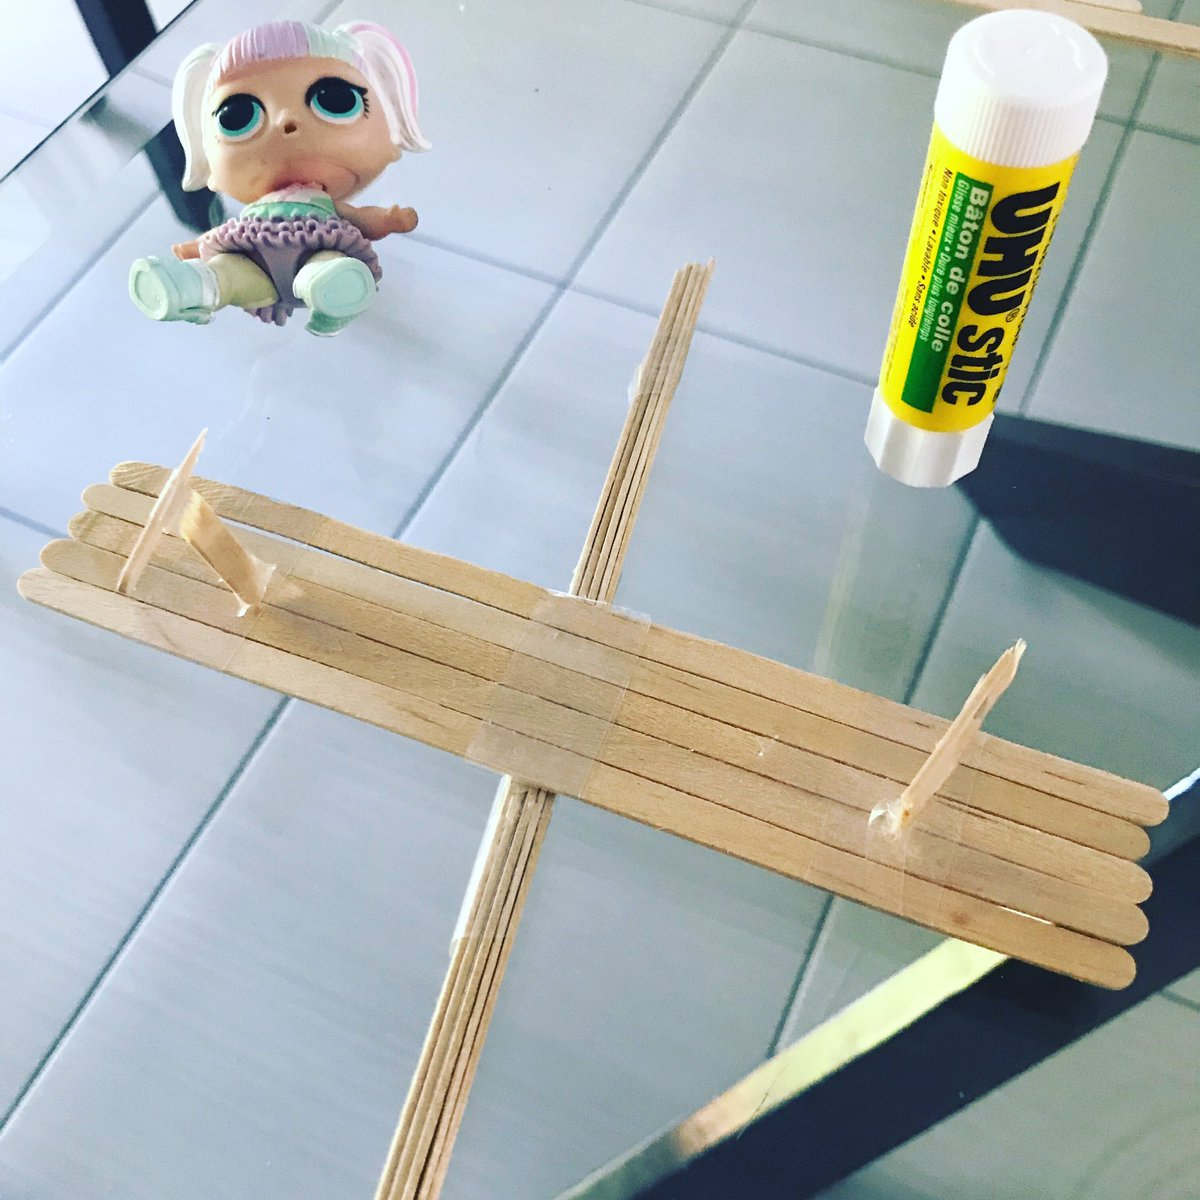 """test Twitter Media - """"I made a teeter totter."""" """"How creative! How many sticks did you use?"""" """"Ten whole sticks and four pieces."""" """"How many whole sticks would the four pieces make?"""" """"I think one whole but I made a mistake so I actually used two."""" #everyonecanlearnmath #tmwyk  #lolsurprisedolls https://t.co/sMdcdxtwSC"""